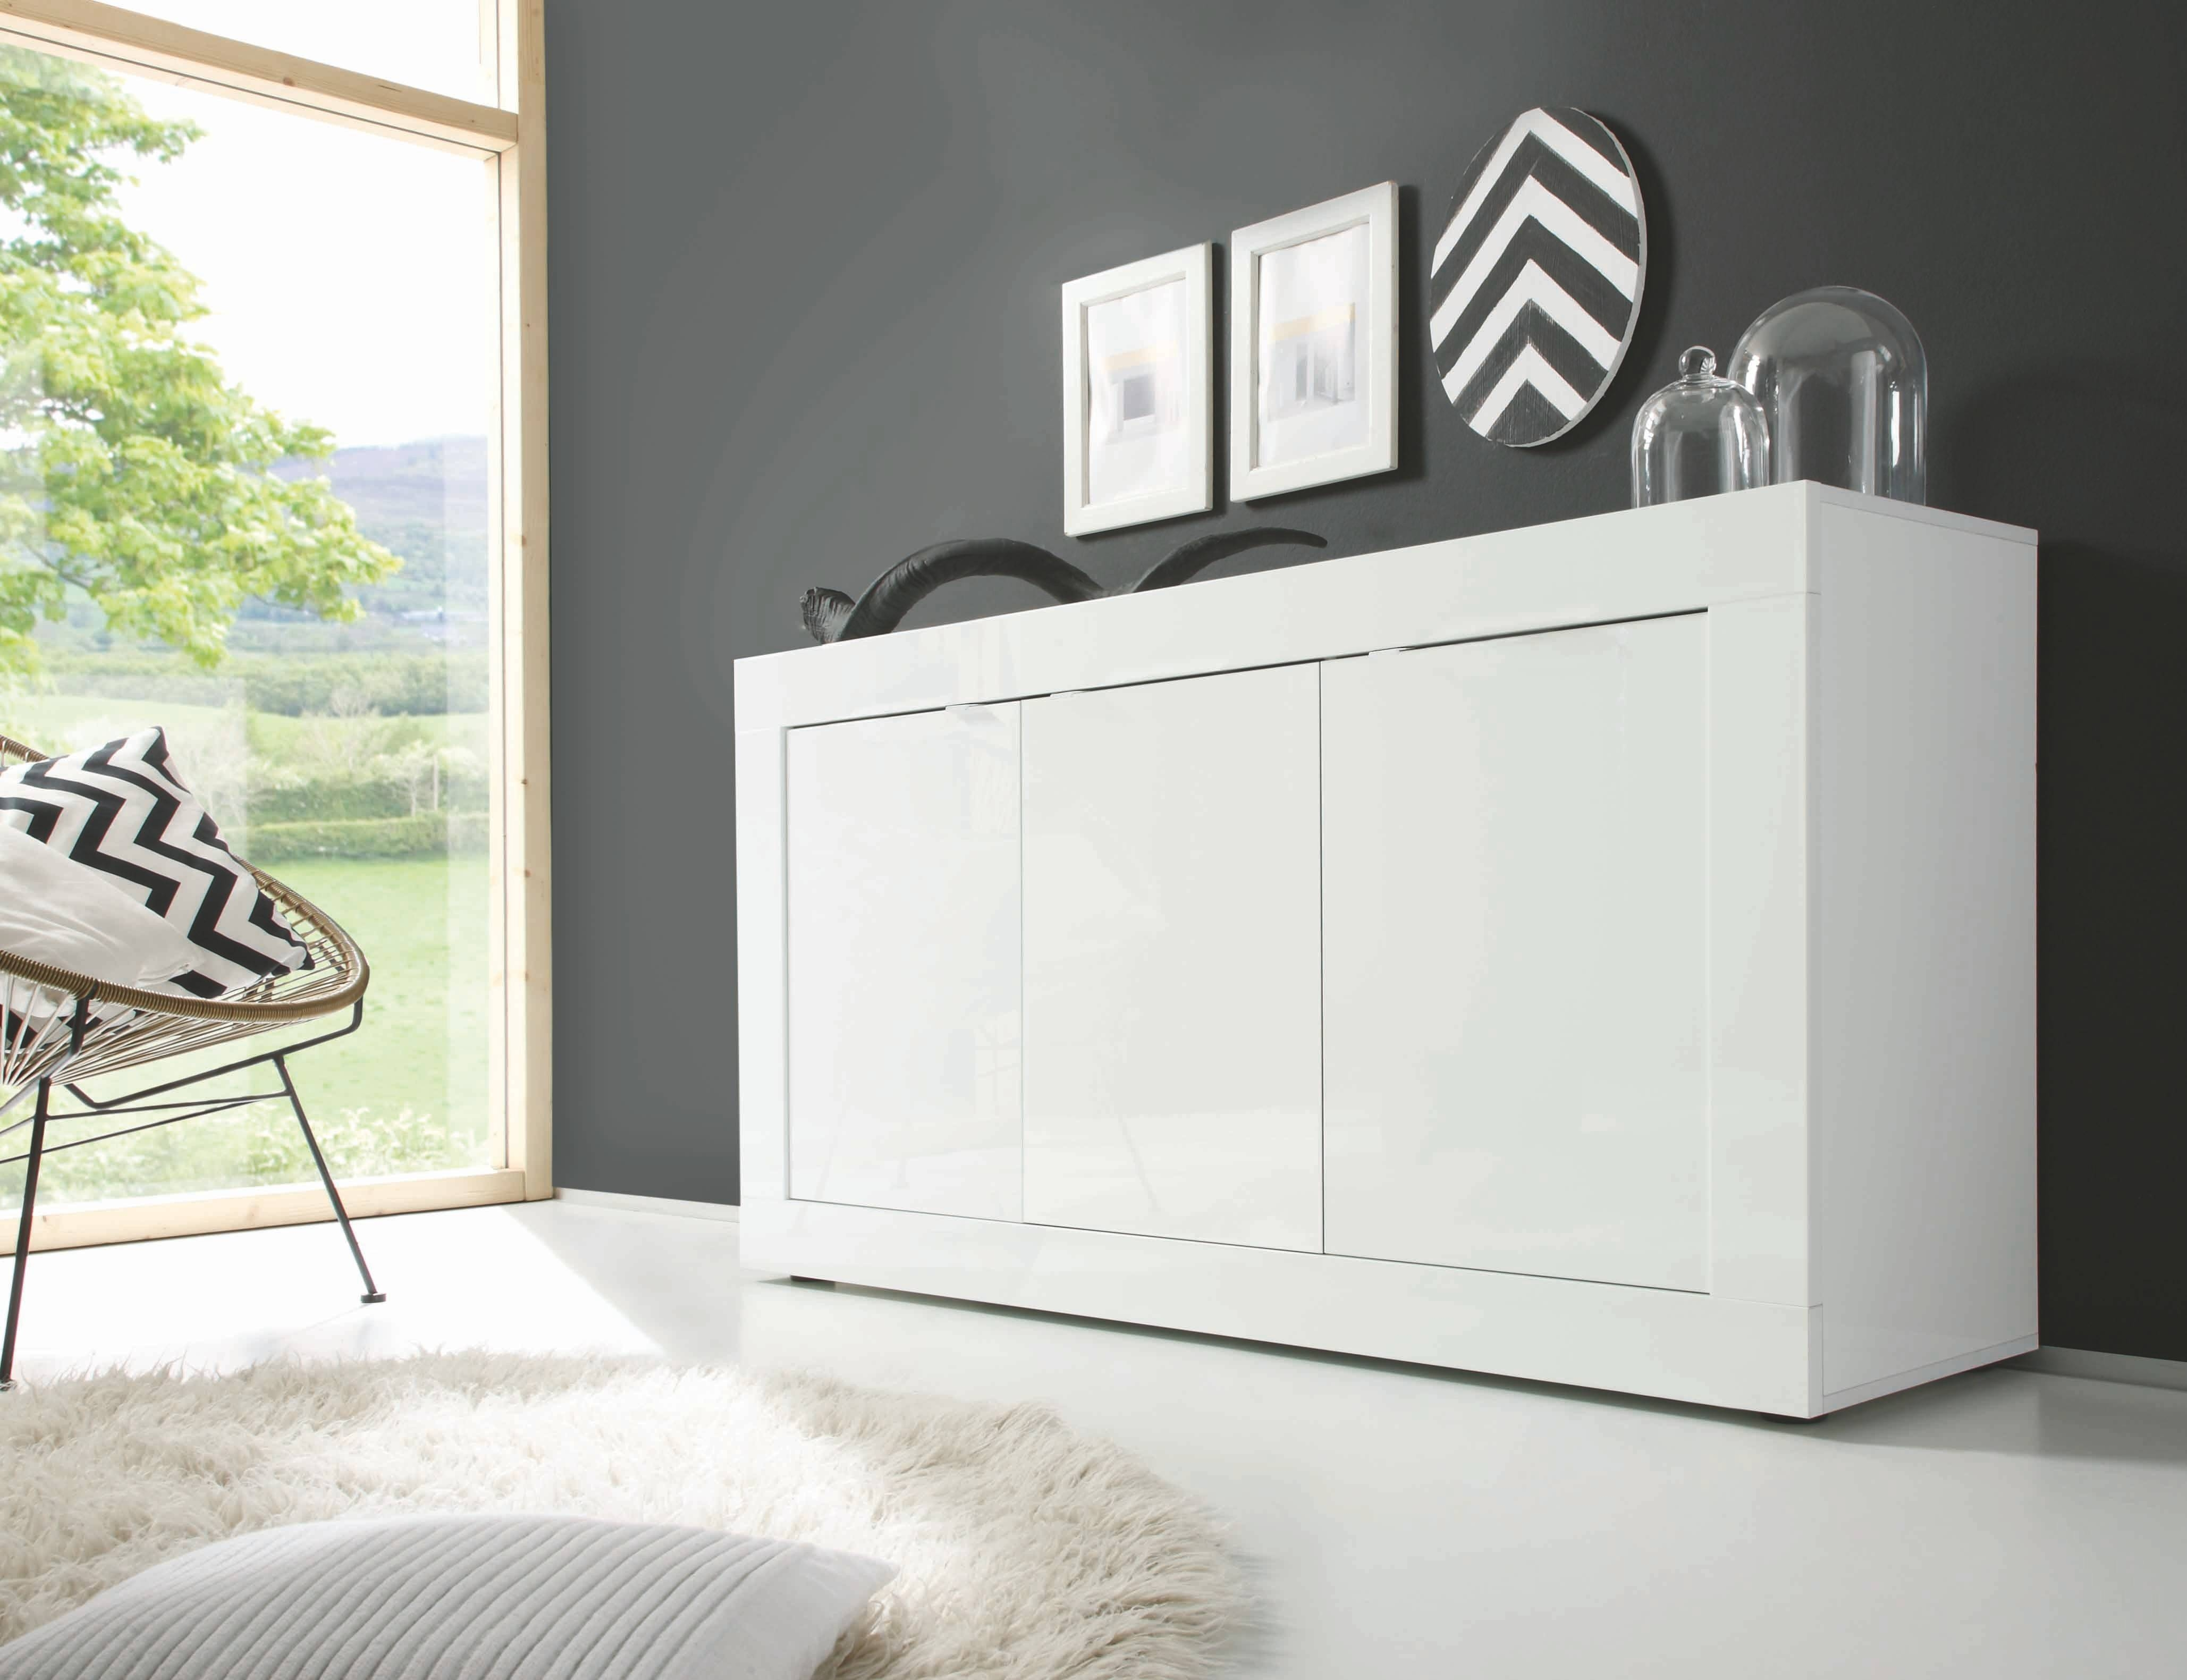 Basic 3 Door Sideboard, All White Buy Online At Best Price – Sohomod Pertaining To Sideboard White (#3 of 20)